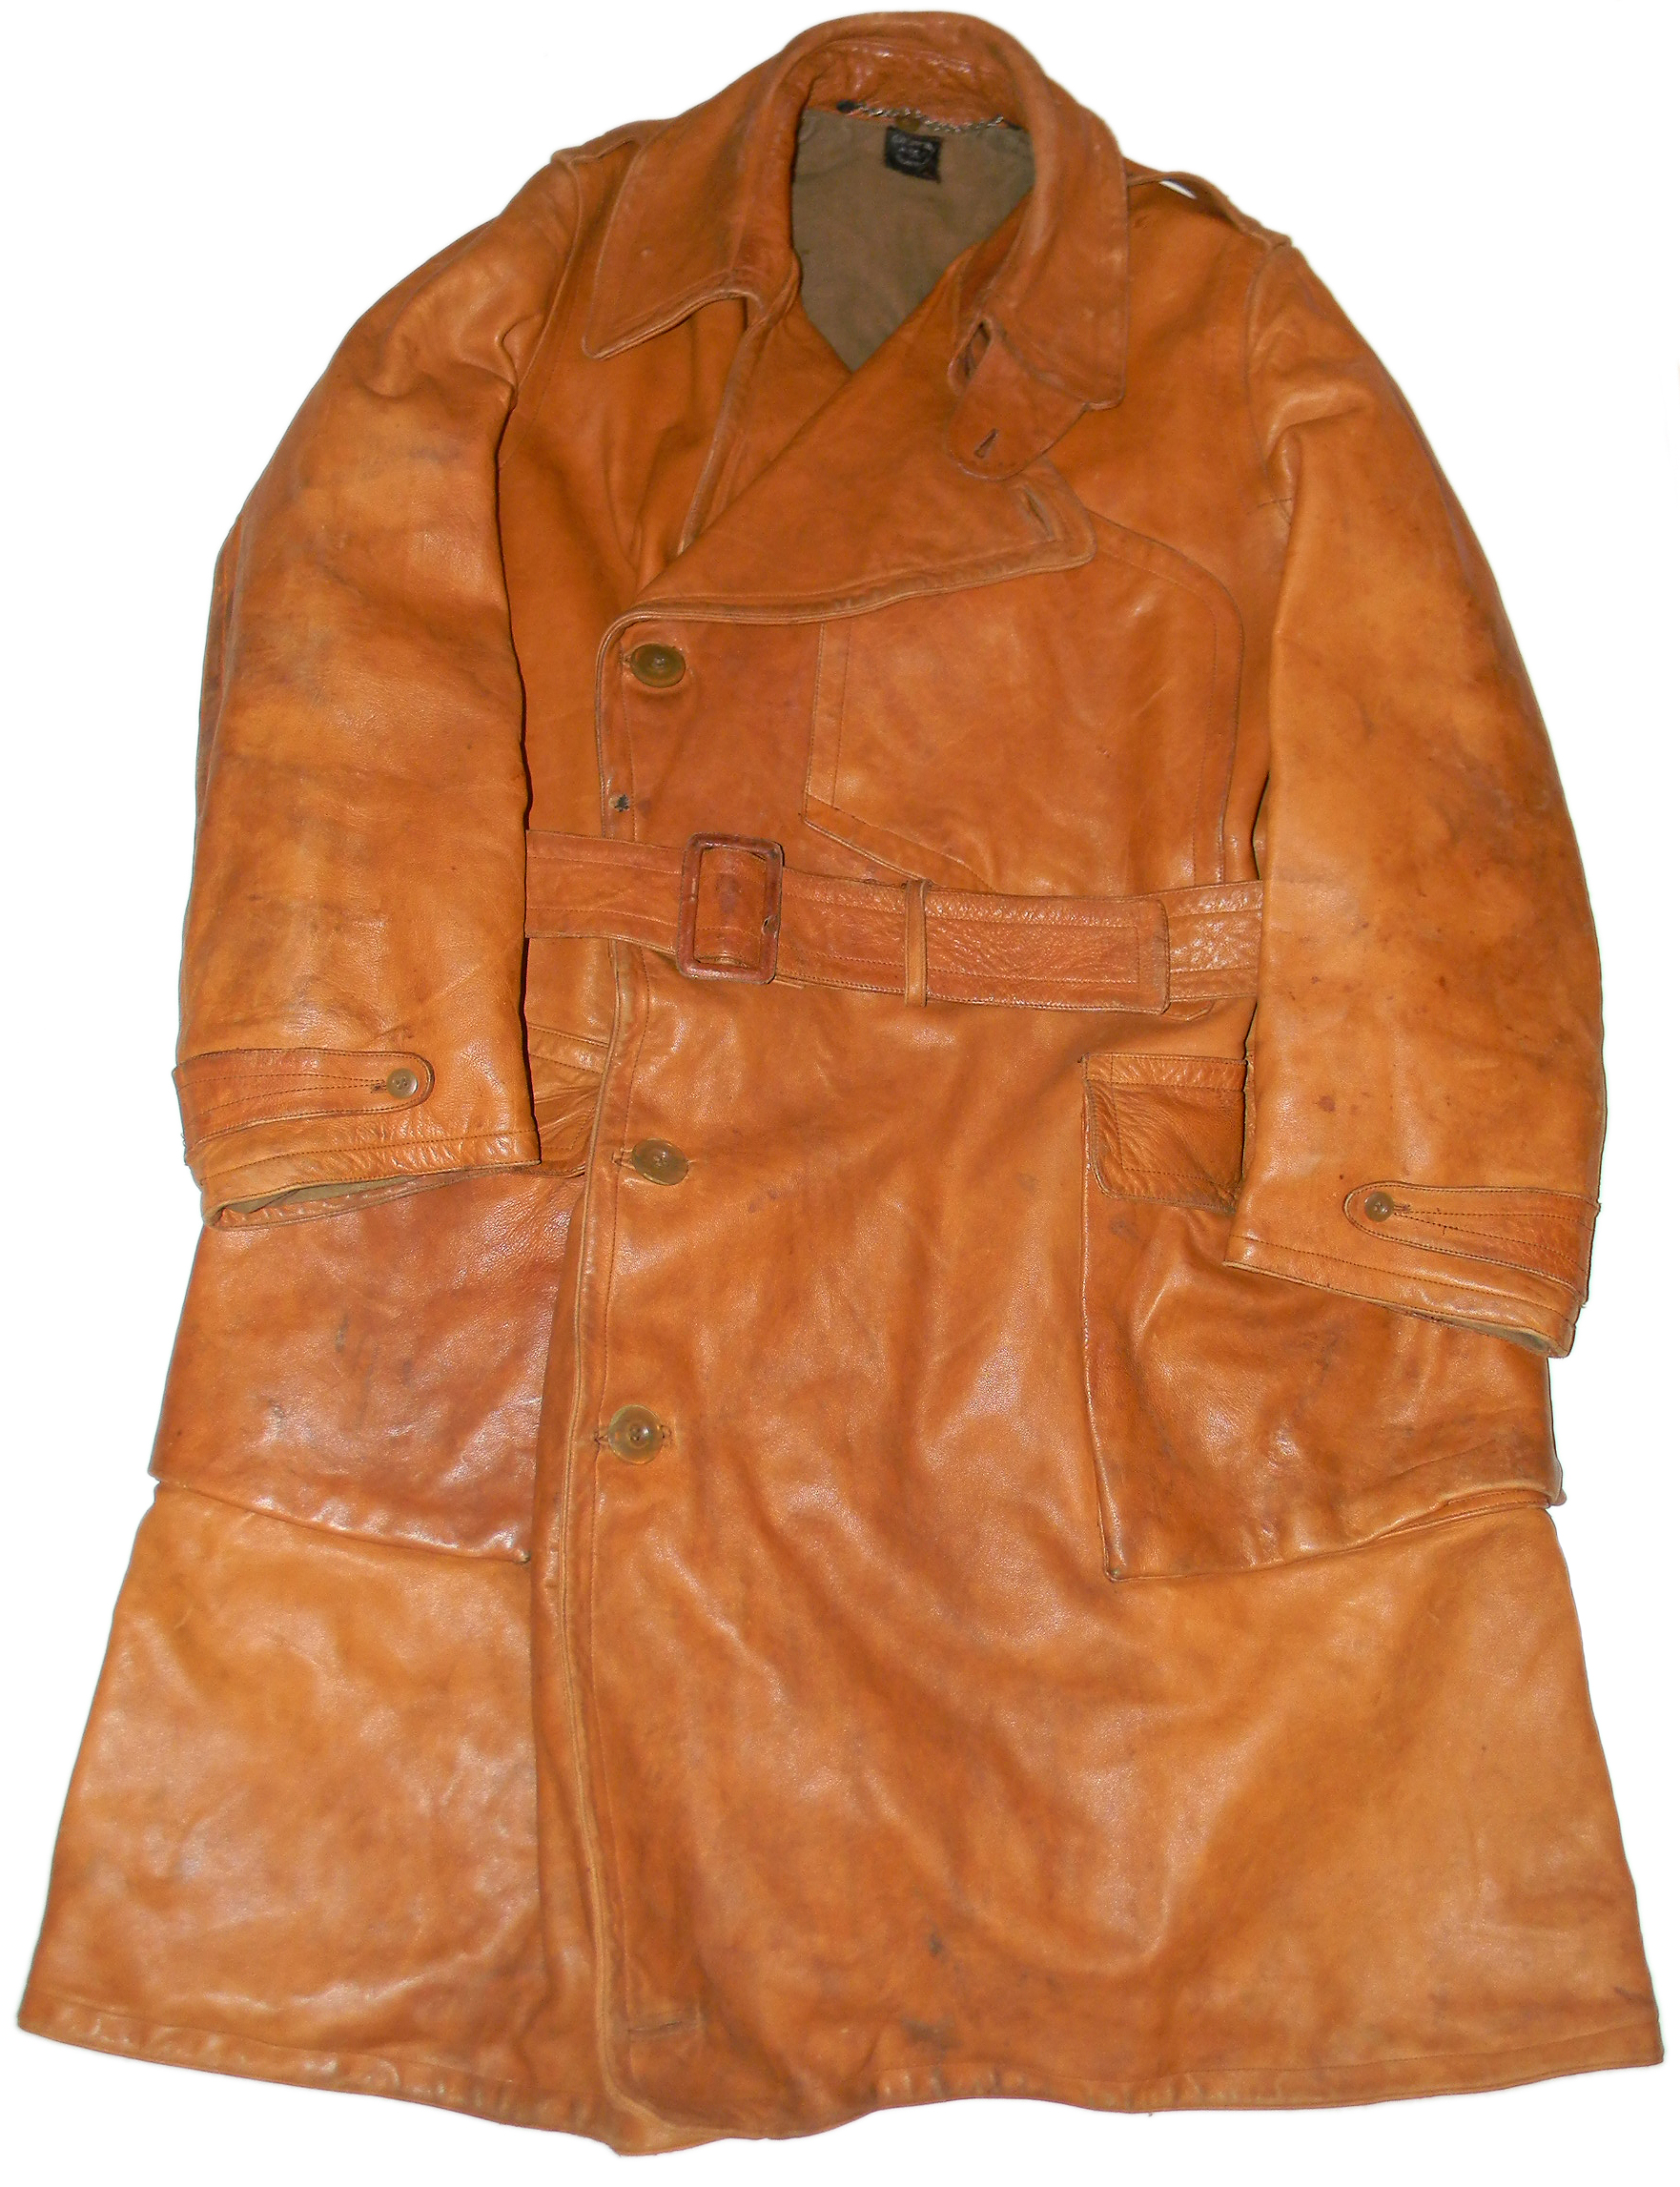 WWI USN aviator flying clothing